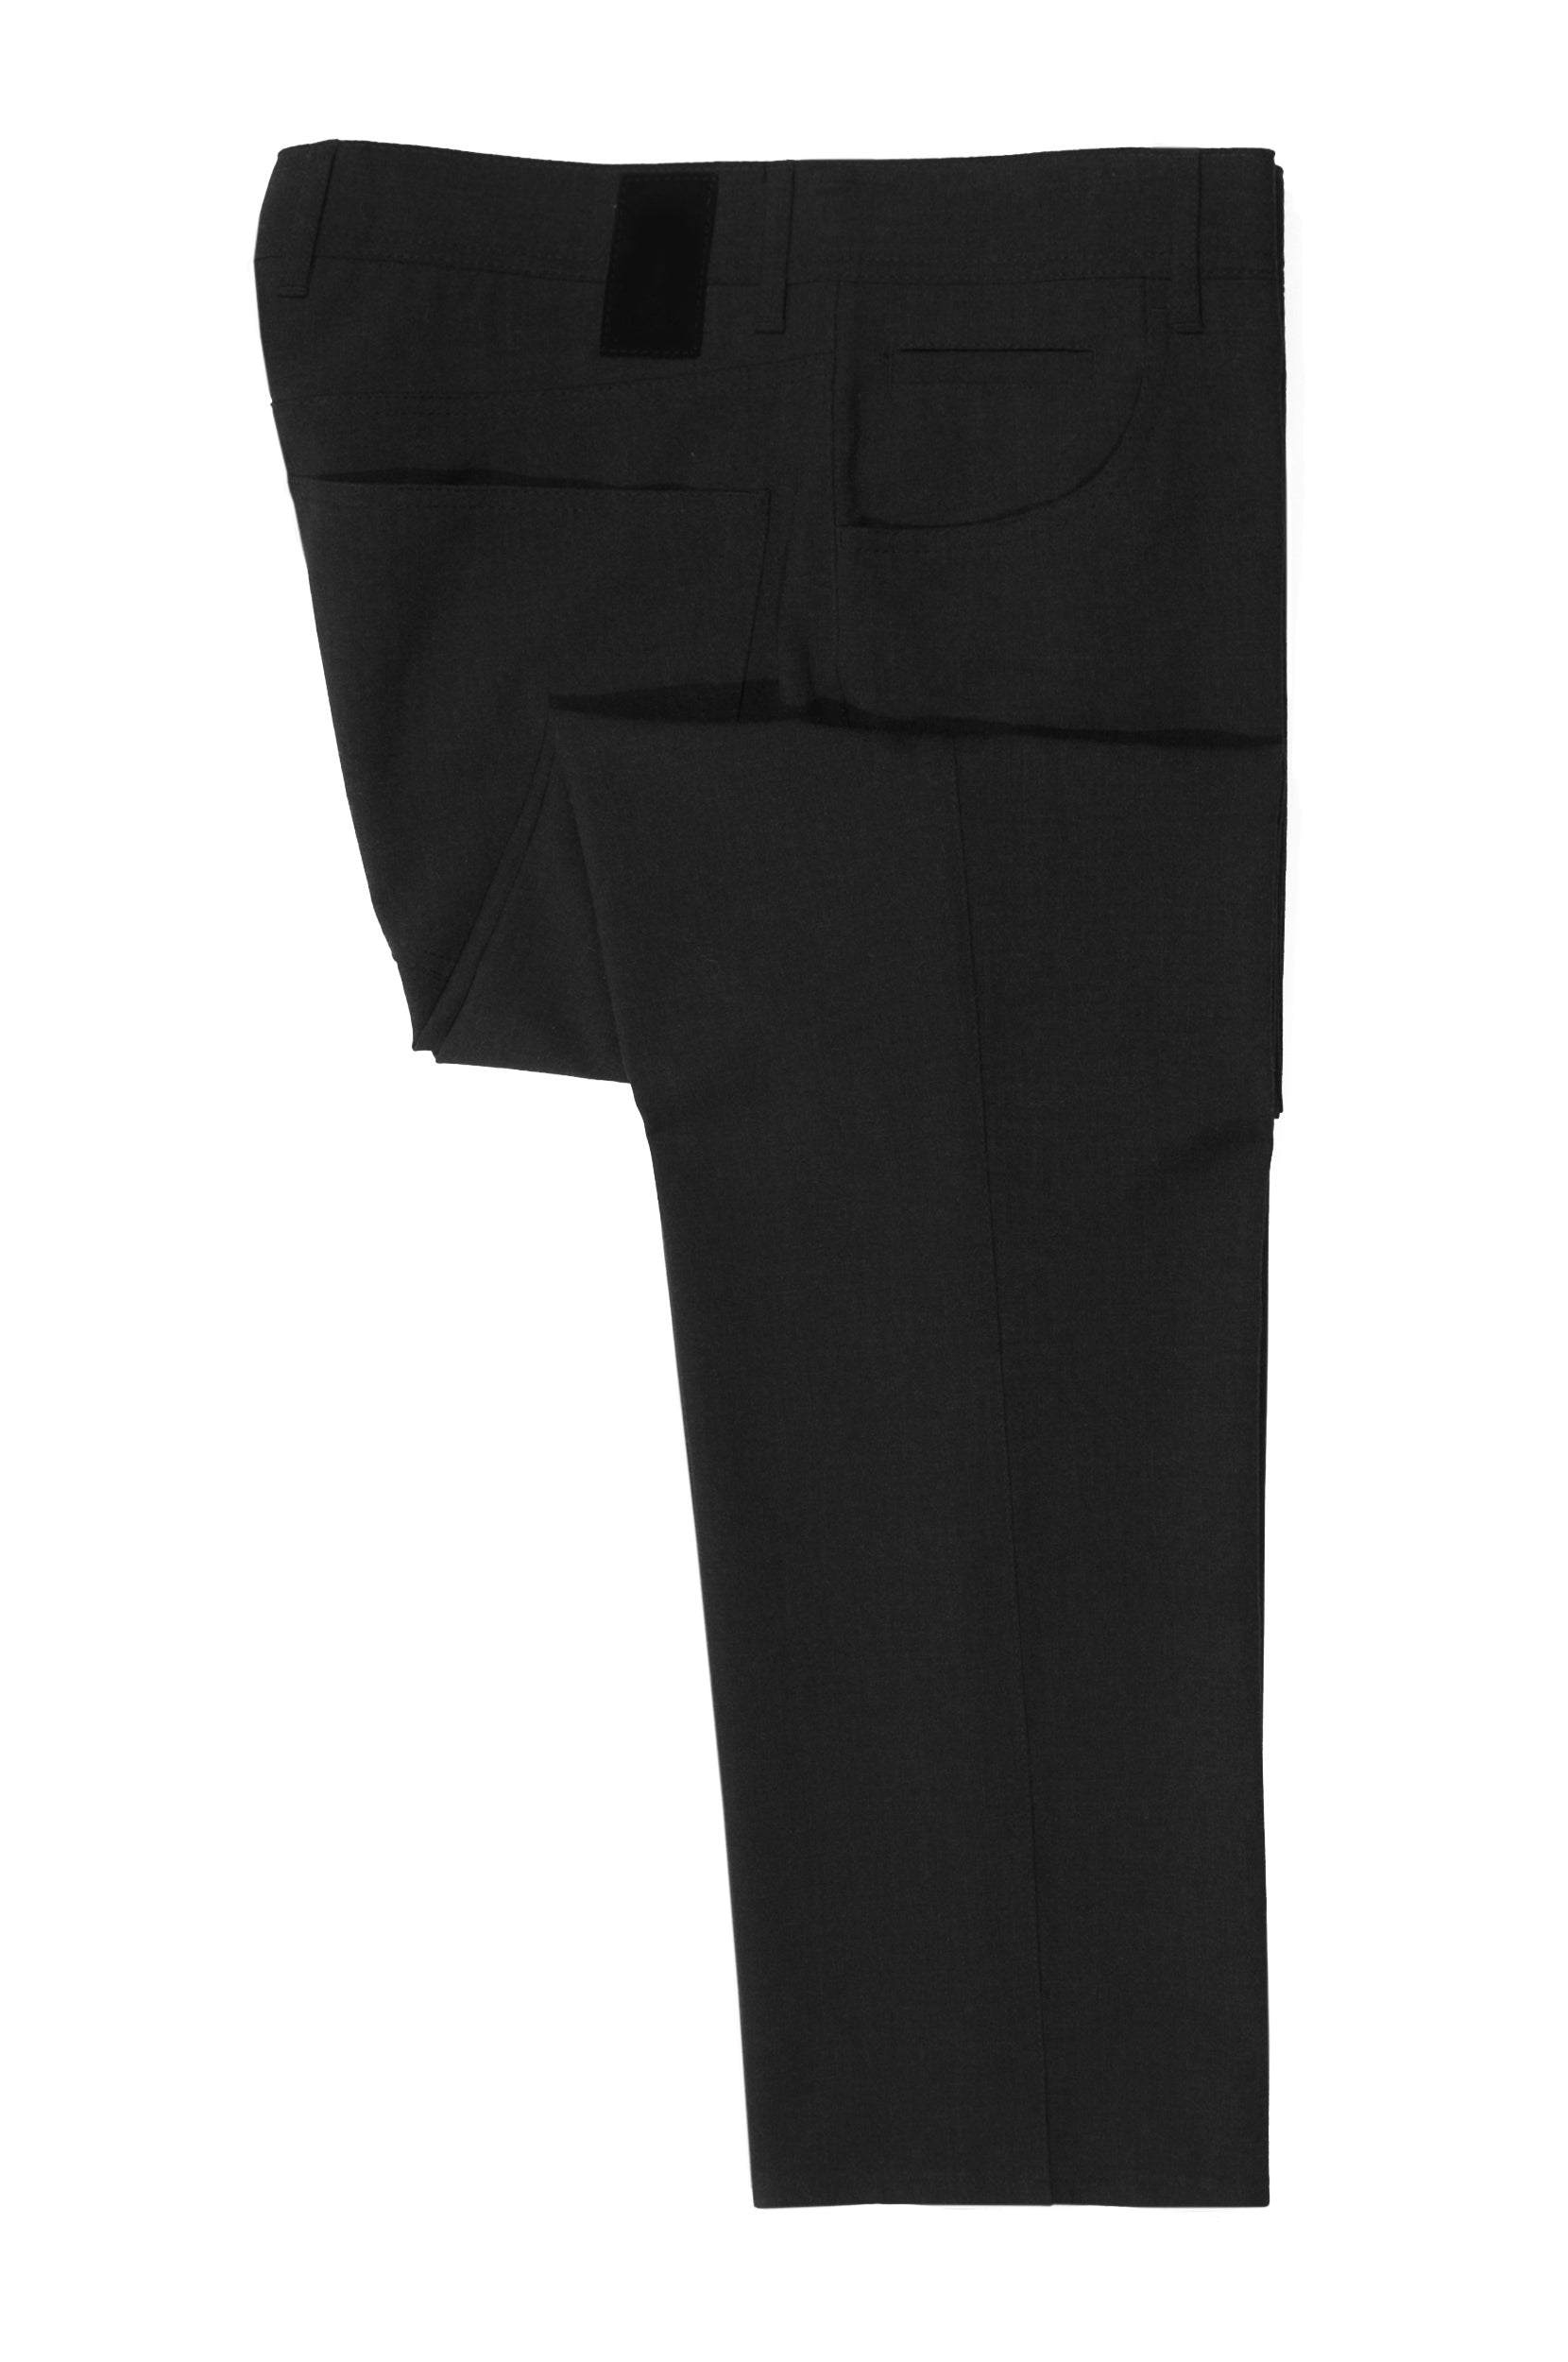 Alberto Black Stone Modern Fit Smart Fancy Trousers for Luxmrkt.com Menswear Consignment Edmonton